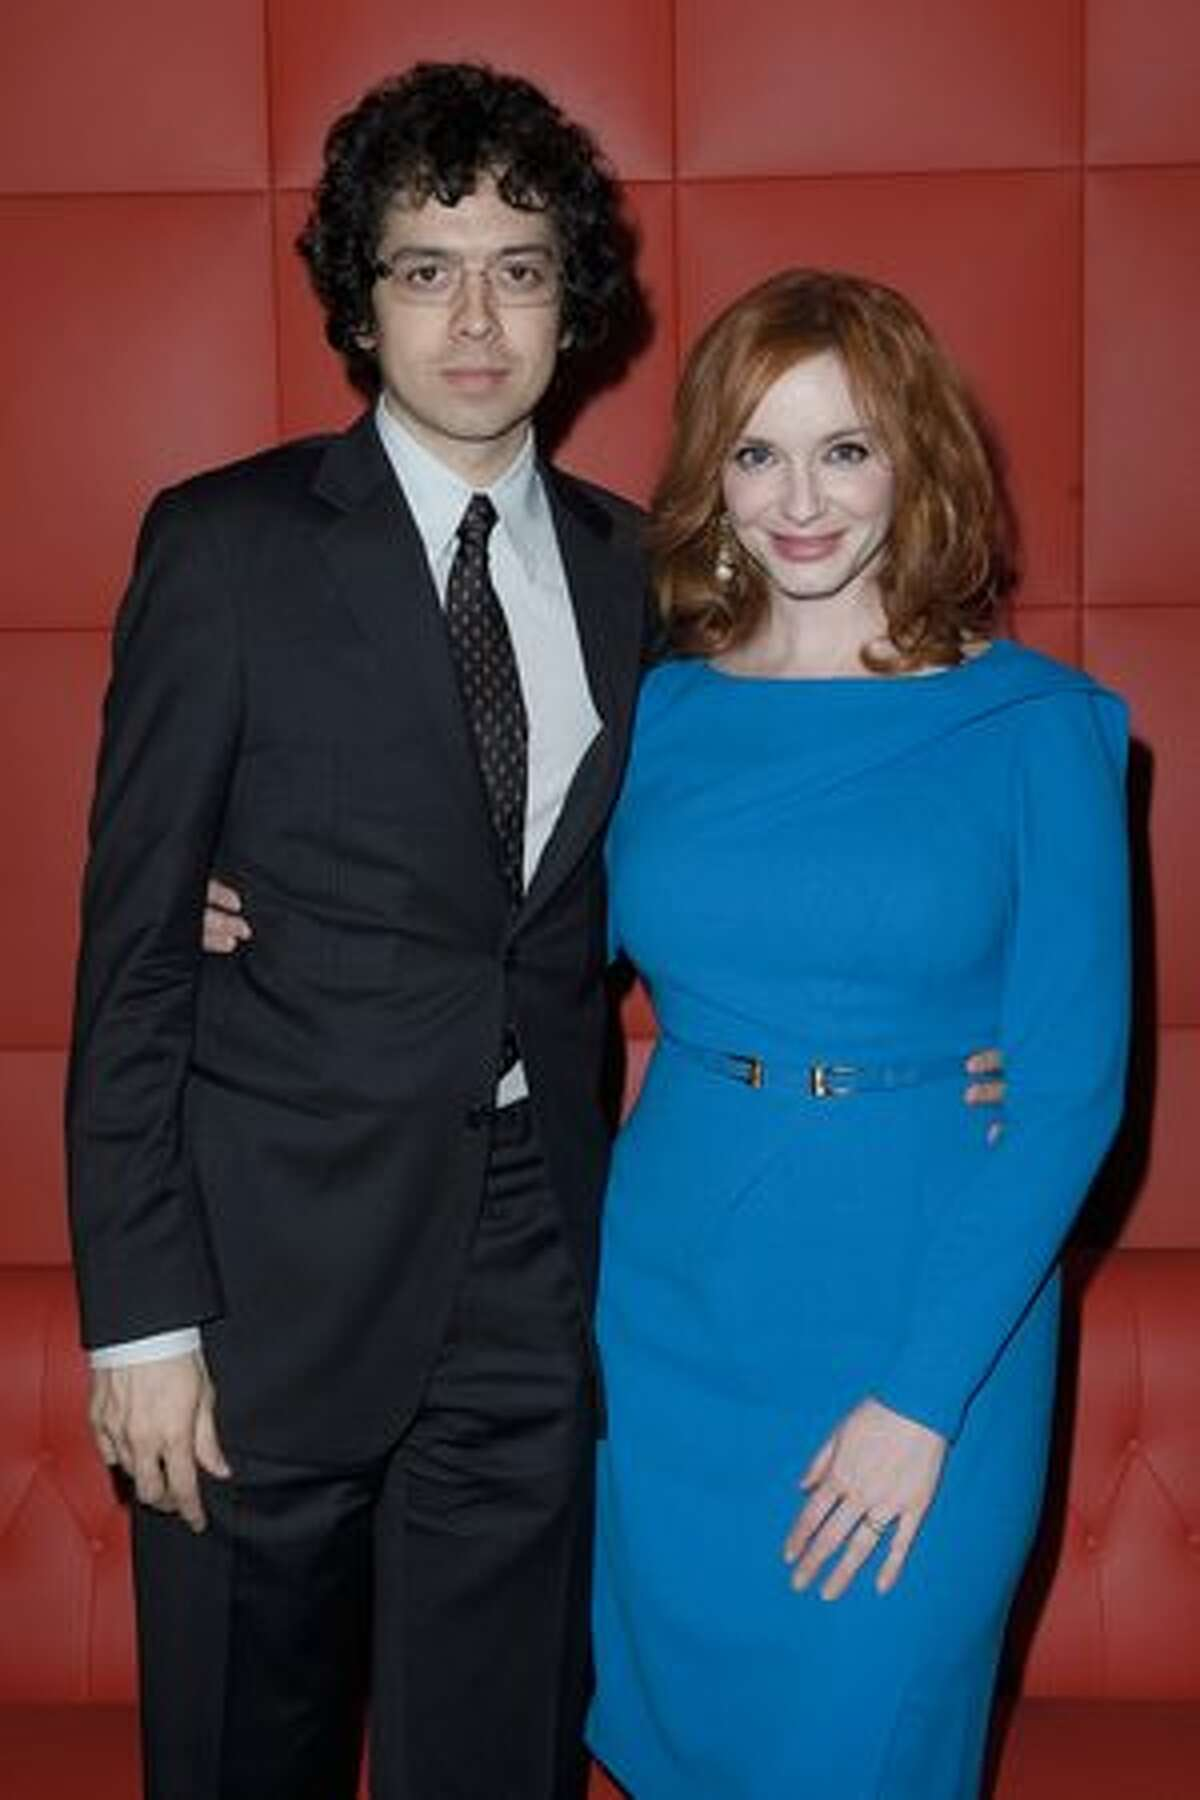 PARIS, FRANCE - Actors Christina Hendricks (R) and Geoffrey Arend pose during the AMC - Mad Men Gala Event at Hotel Royal Monceau Raffle on Tuesday in Paris, France.